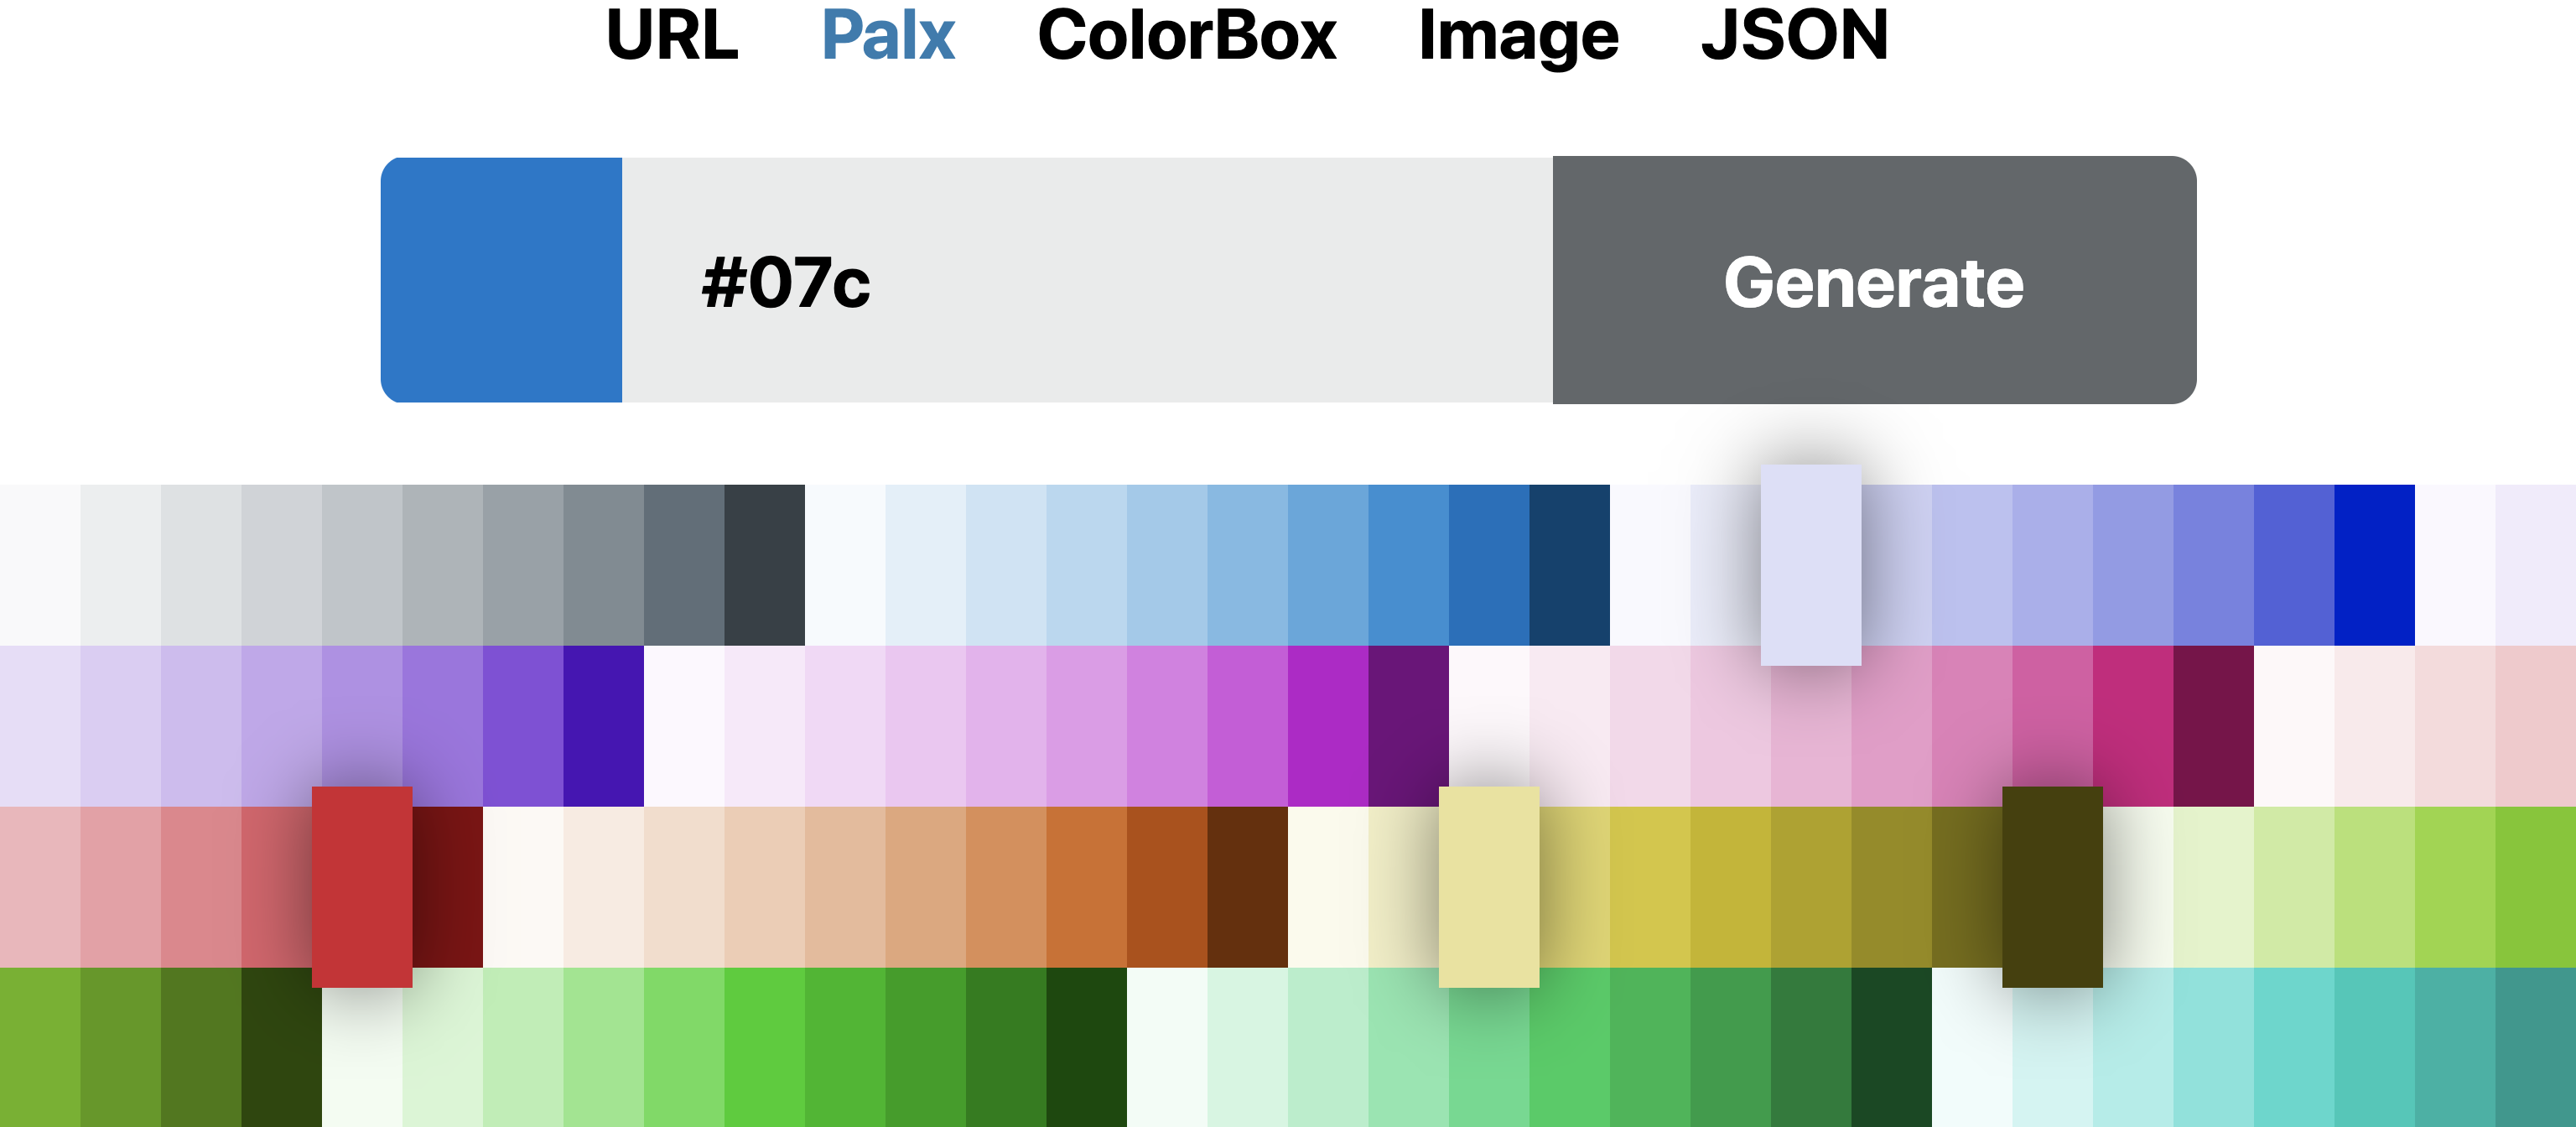 Palette generated from Palx with color #07c